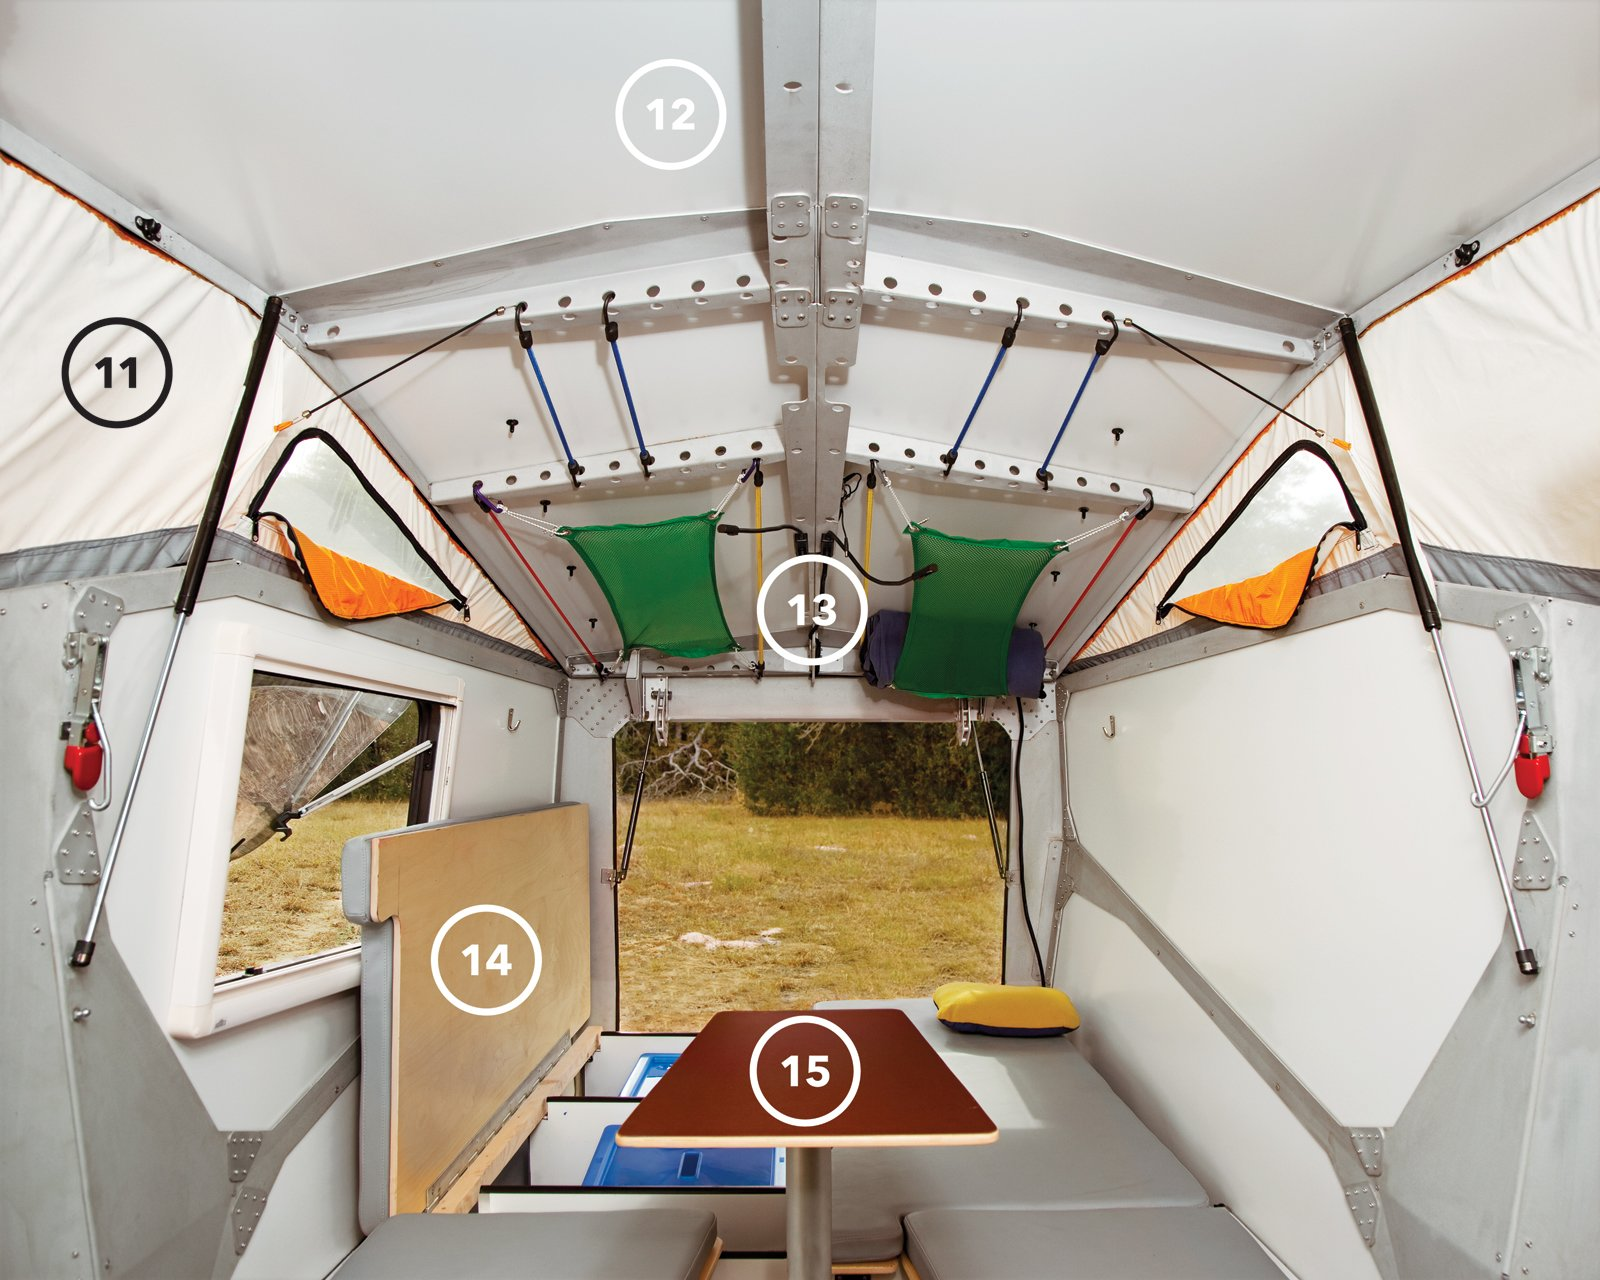 While the front, kitchen-end of the camper is all action, the back half is about rest and relaxation. The benches hide storage space beneath and, at night, become the sleeping area (14). The multiheight table (15) serves as an eating spot when in its highest position and as extra sleeping space when lowered and covered with a cushion. The table and its post can also be completly removed for additional legroom. The mesh-lined windows in the tent enclosure (11) bring in light and encourage ventilation. The LED reading lights (13) can be set to white or red (the latter keeps your eyes from dilating so you can run outside at a moment's notice and catch a glimpse of a shooting star without waiting for your eyes to adjust). The laser-cut aluminum frame (12) features circular openings that make hanging sleeping bags, pillows, blankets, and luggage as easy as stretching and hooking elastic cords into place. Modern NASA-Inspired Cricket Trailer - Photo 3 of 15